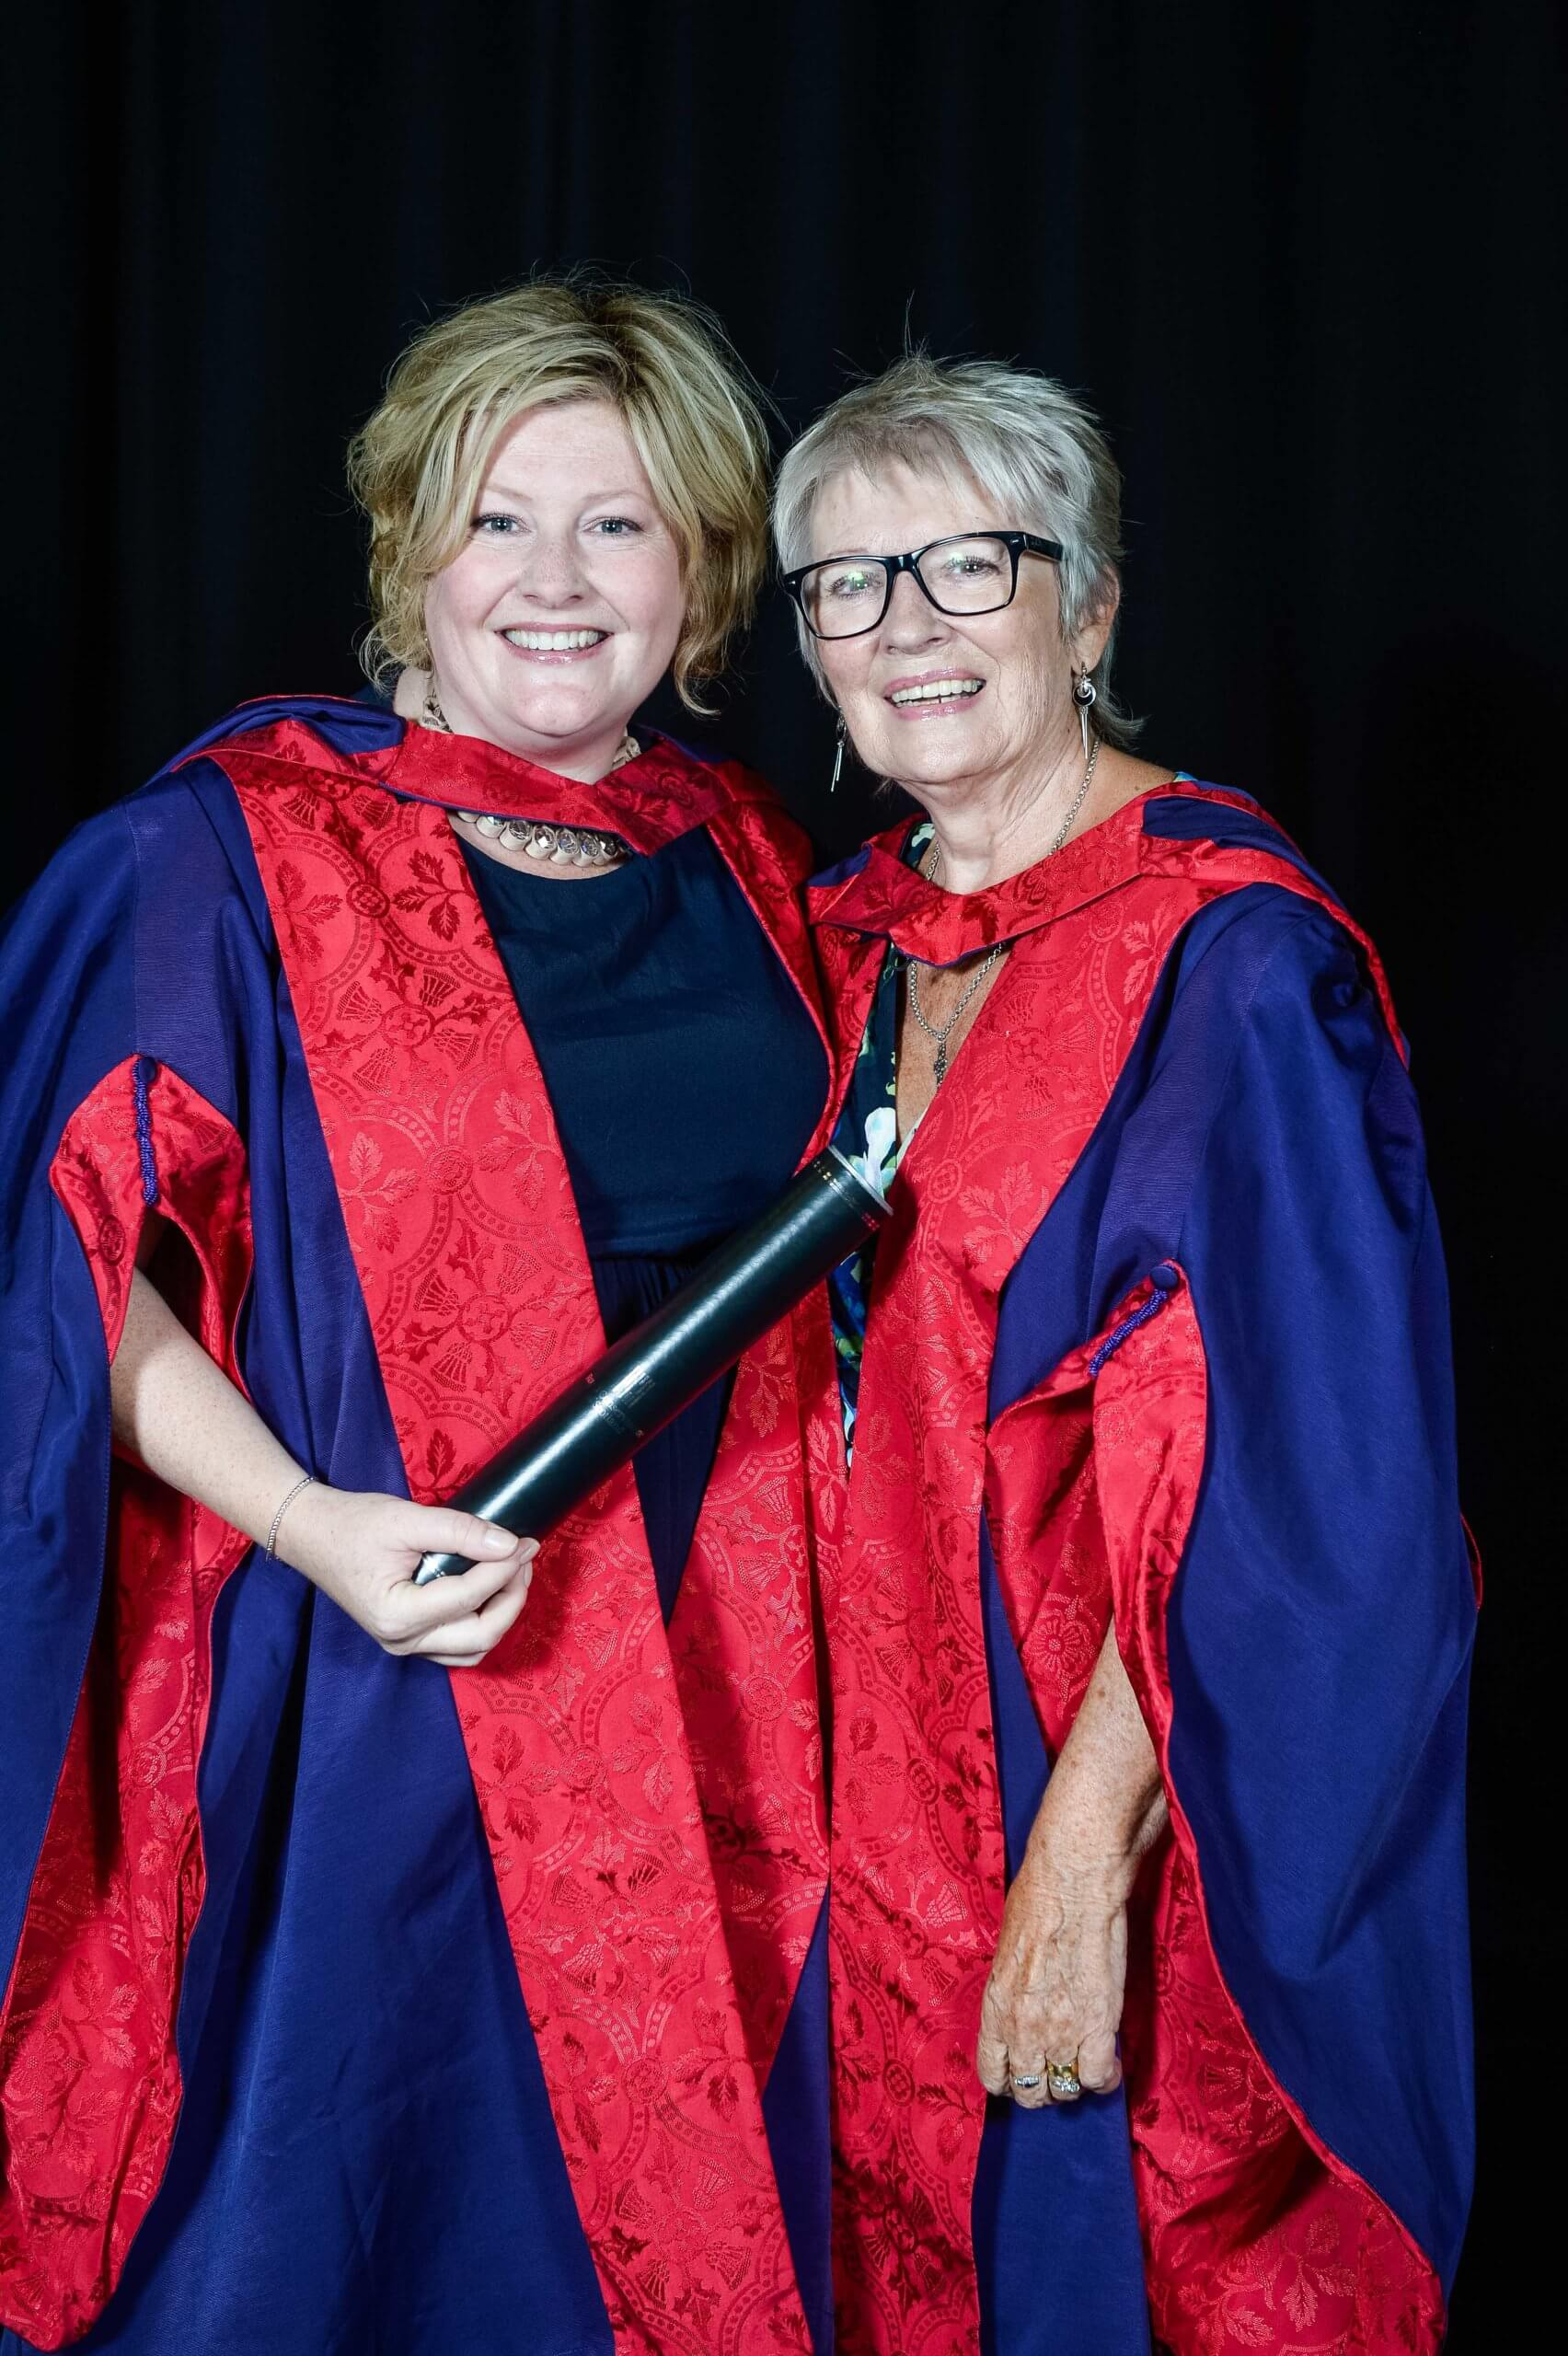 Karen Cargill and her singing teacher Patricia Hay together at the RCS graduation ceremony in 2018,